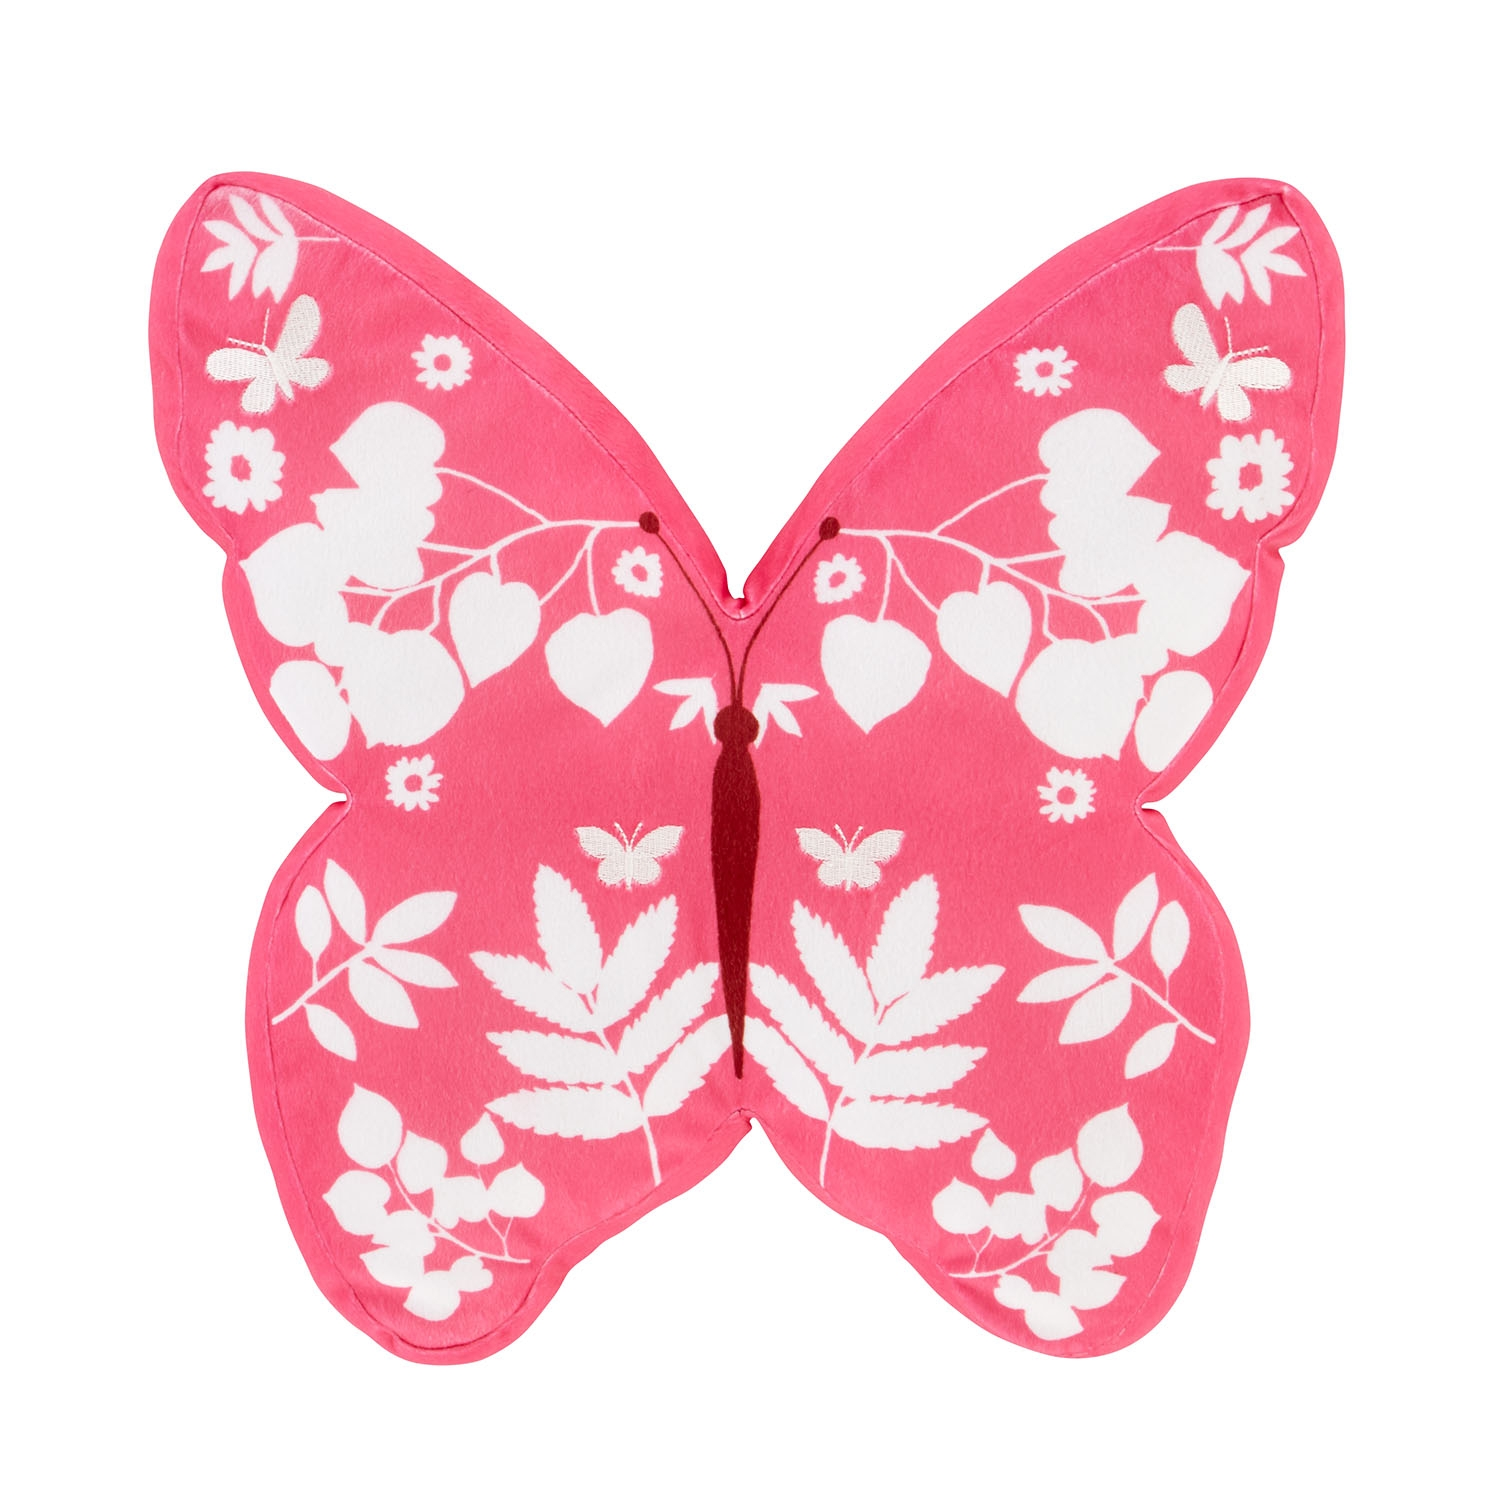 Image of Catherine Lansfield Butterfly 3D Cushion, 40cm x 40cm, Pink